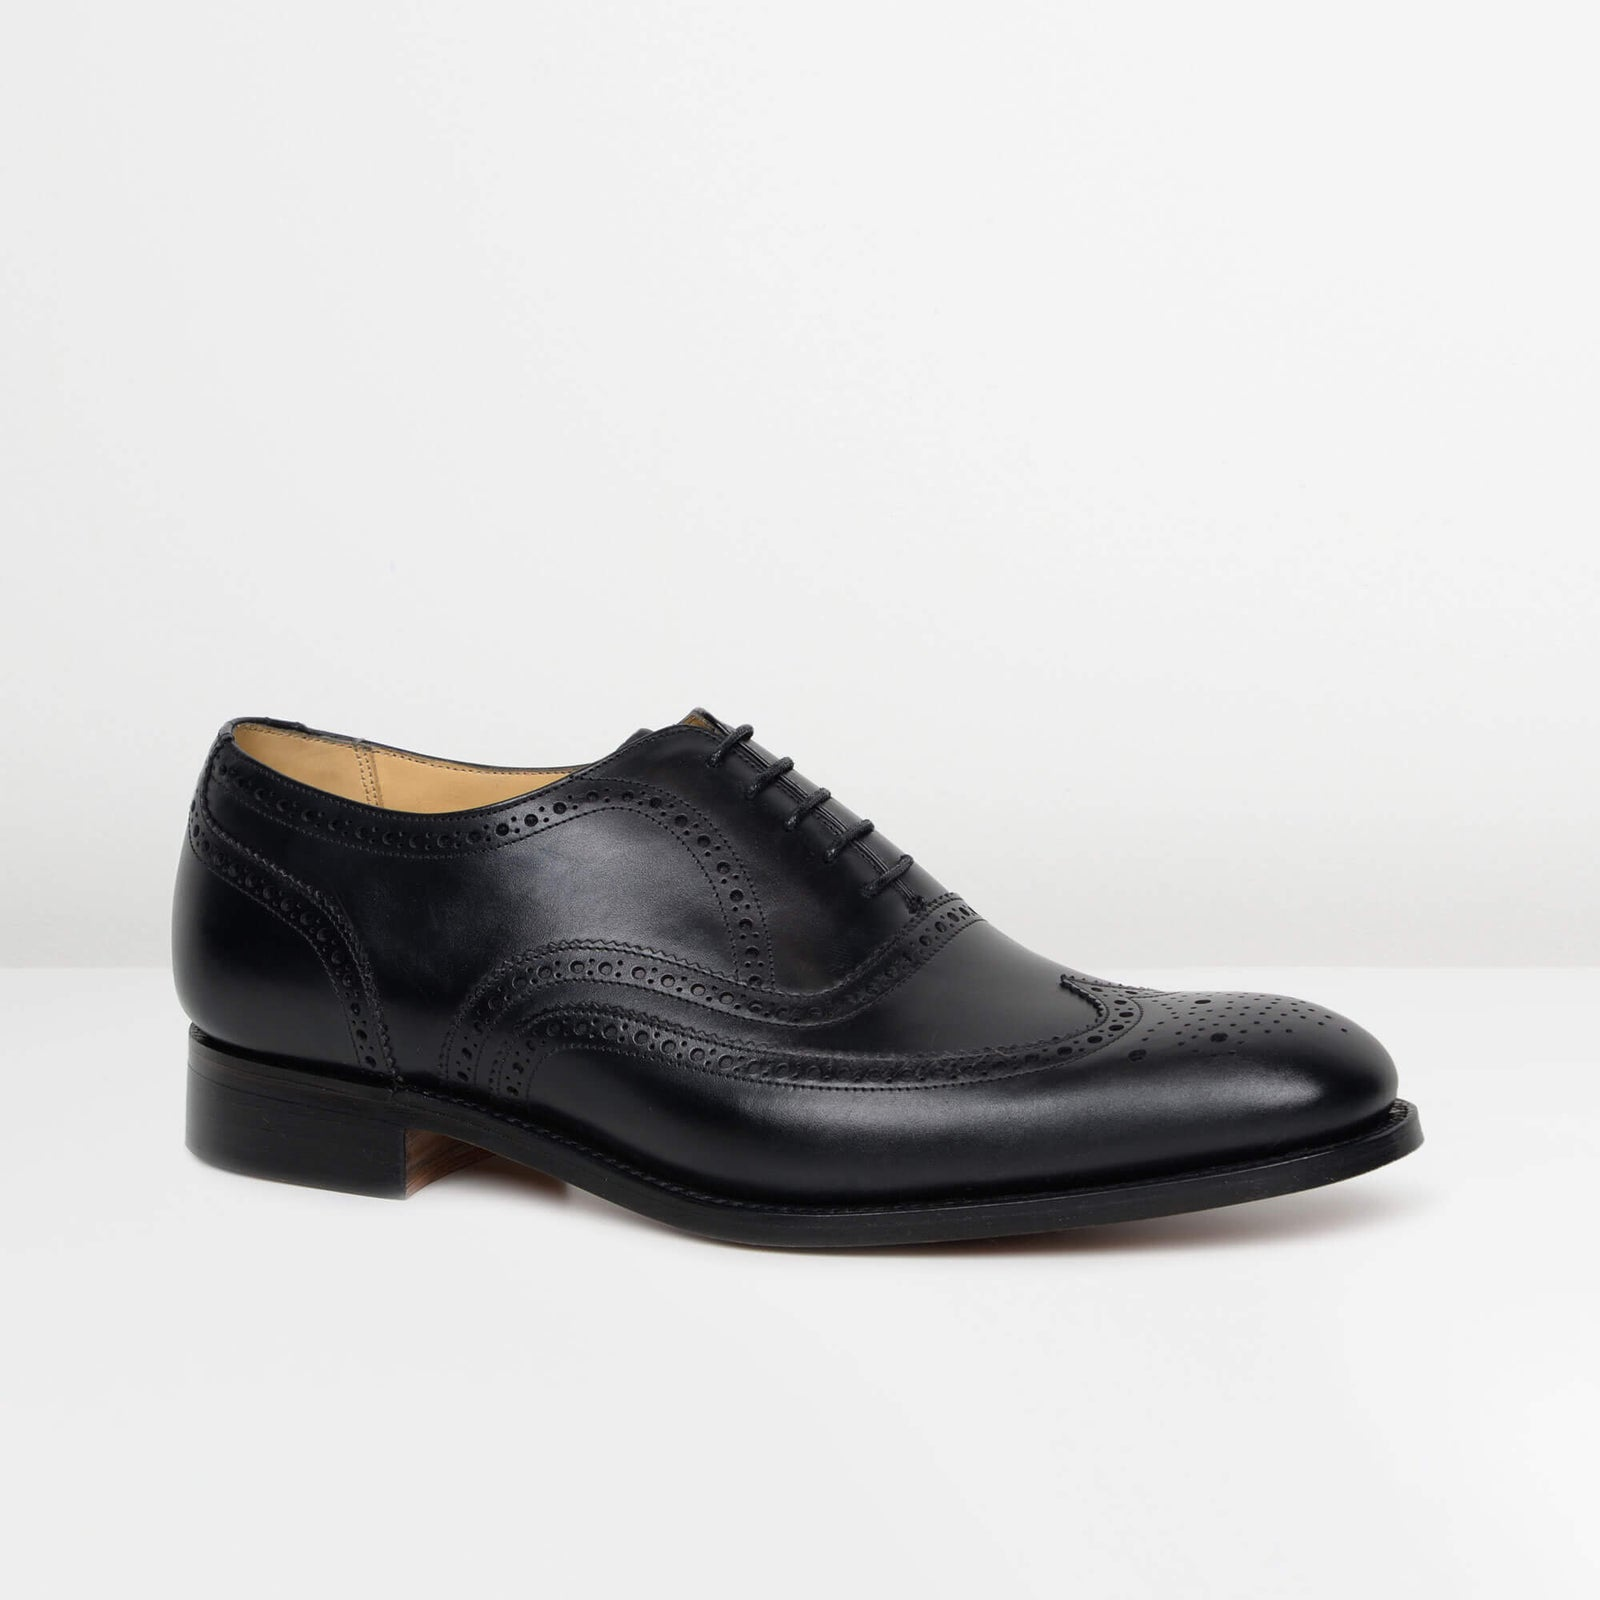 Black Malton Oxford Brogues